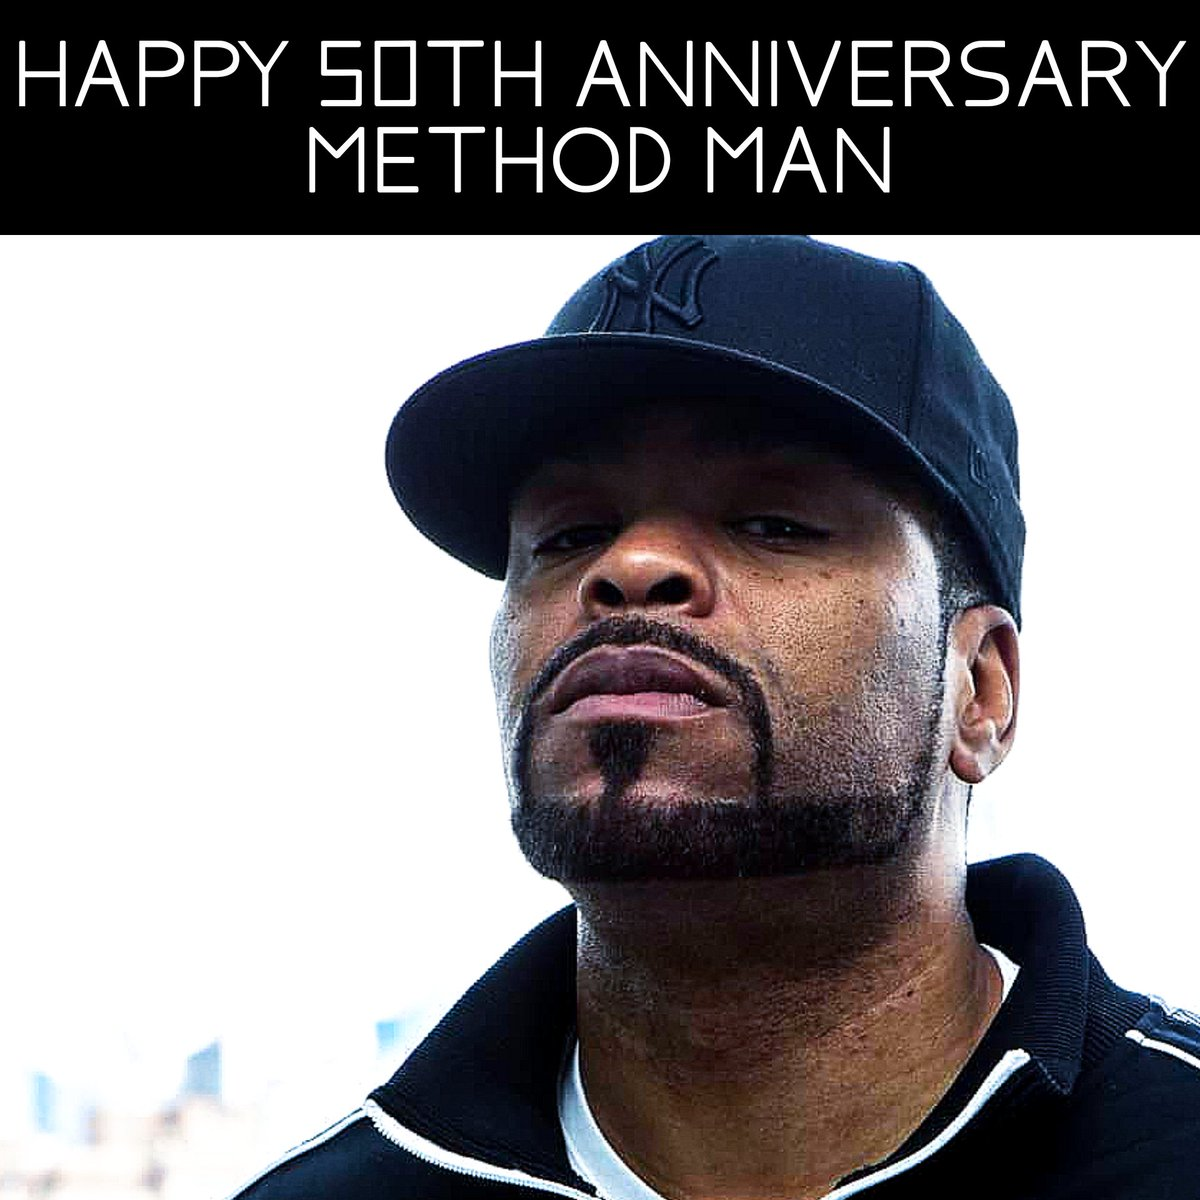 SALUTE LEGEND @METHODMAN & @IAMBECKYG  MARCH 2  #therealyoska #america #english #mrquick #moveyo #rapper #wutangclan #wutang #methodman #happybirthday #beckyg